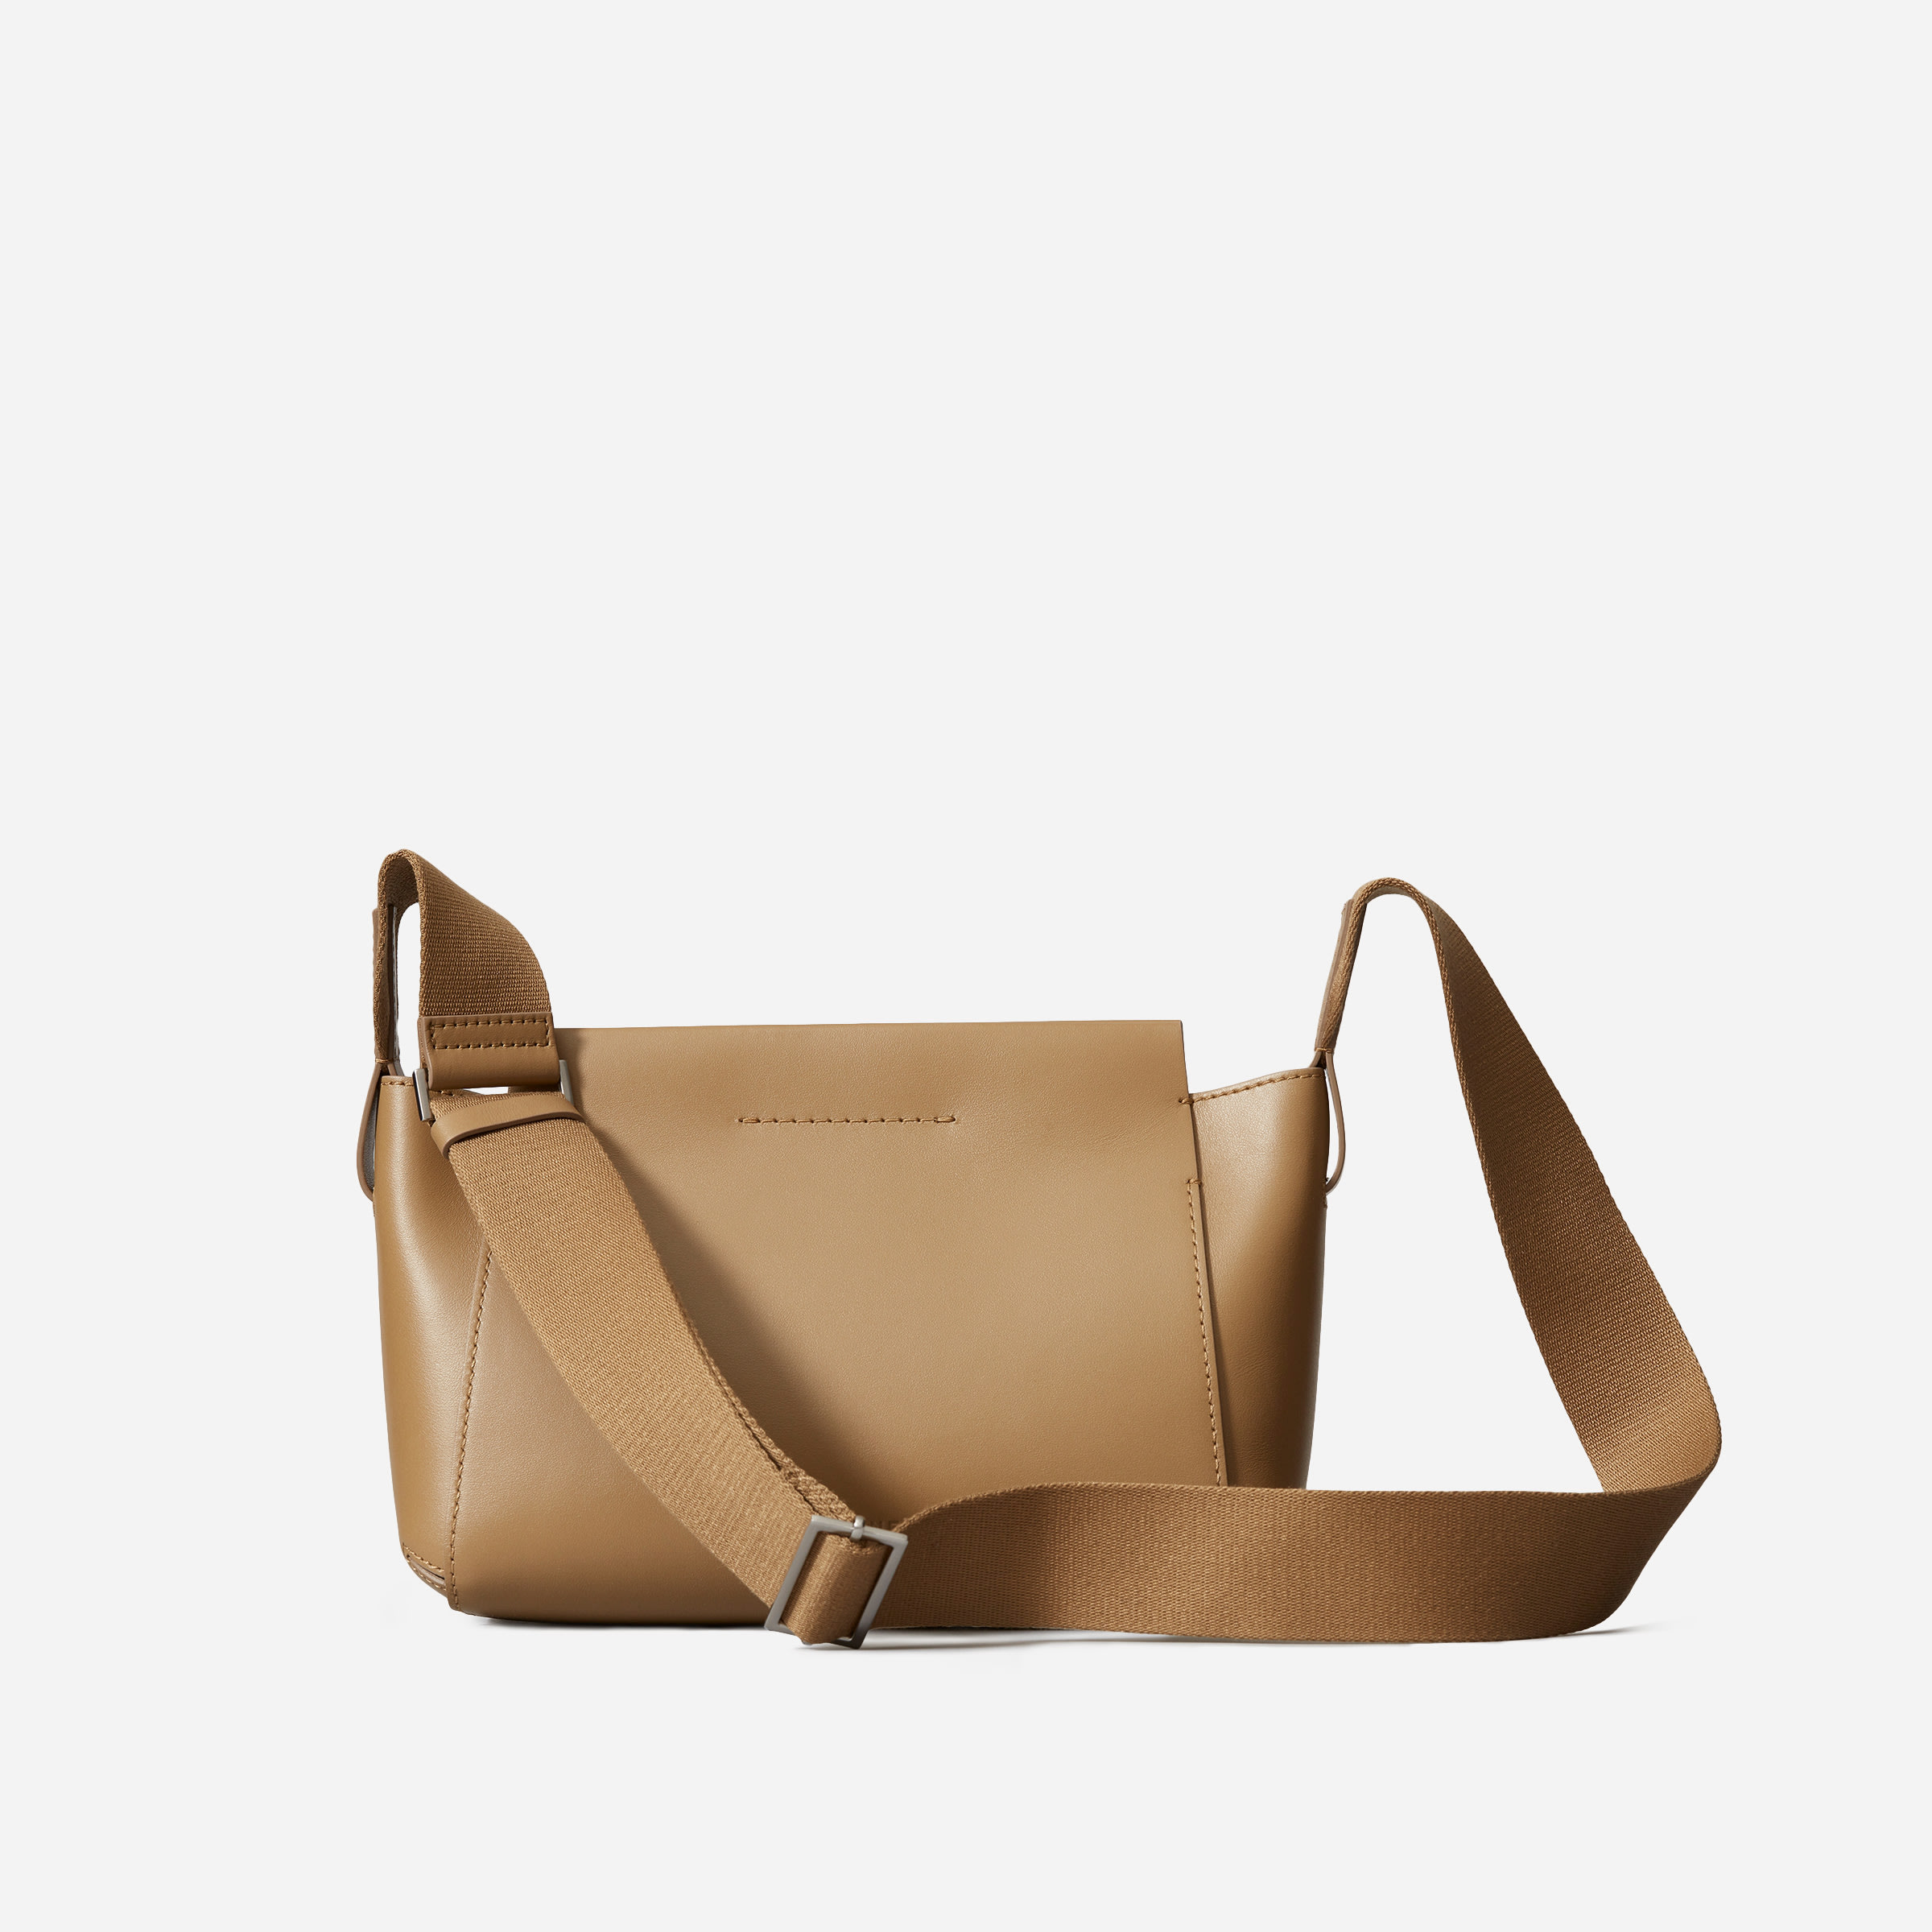 8f094c86c8e Women's Leather Bags – Spanish & Italian Leather Handbags | Everlane